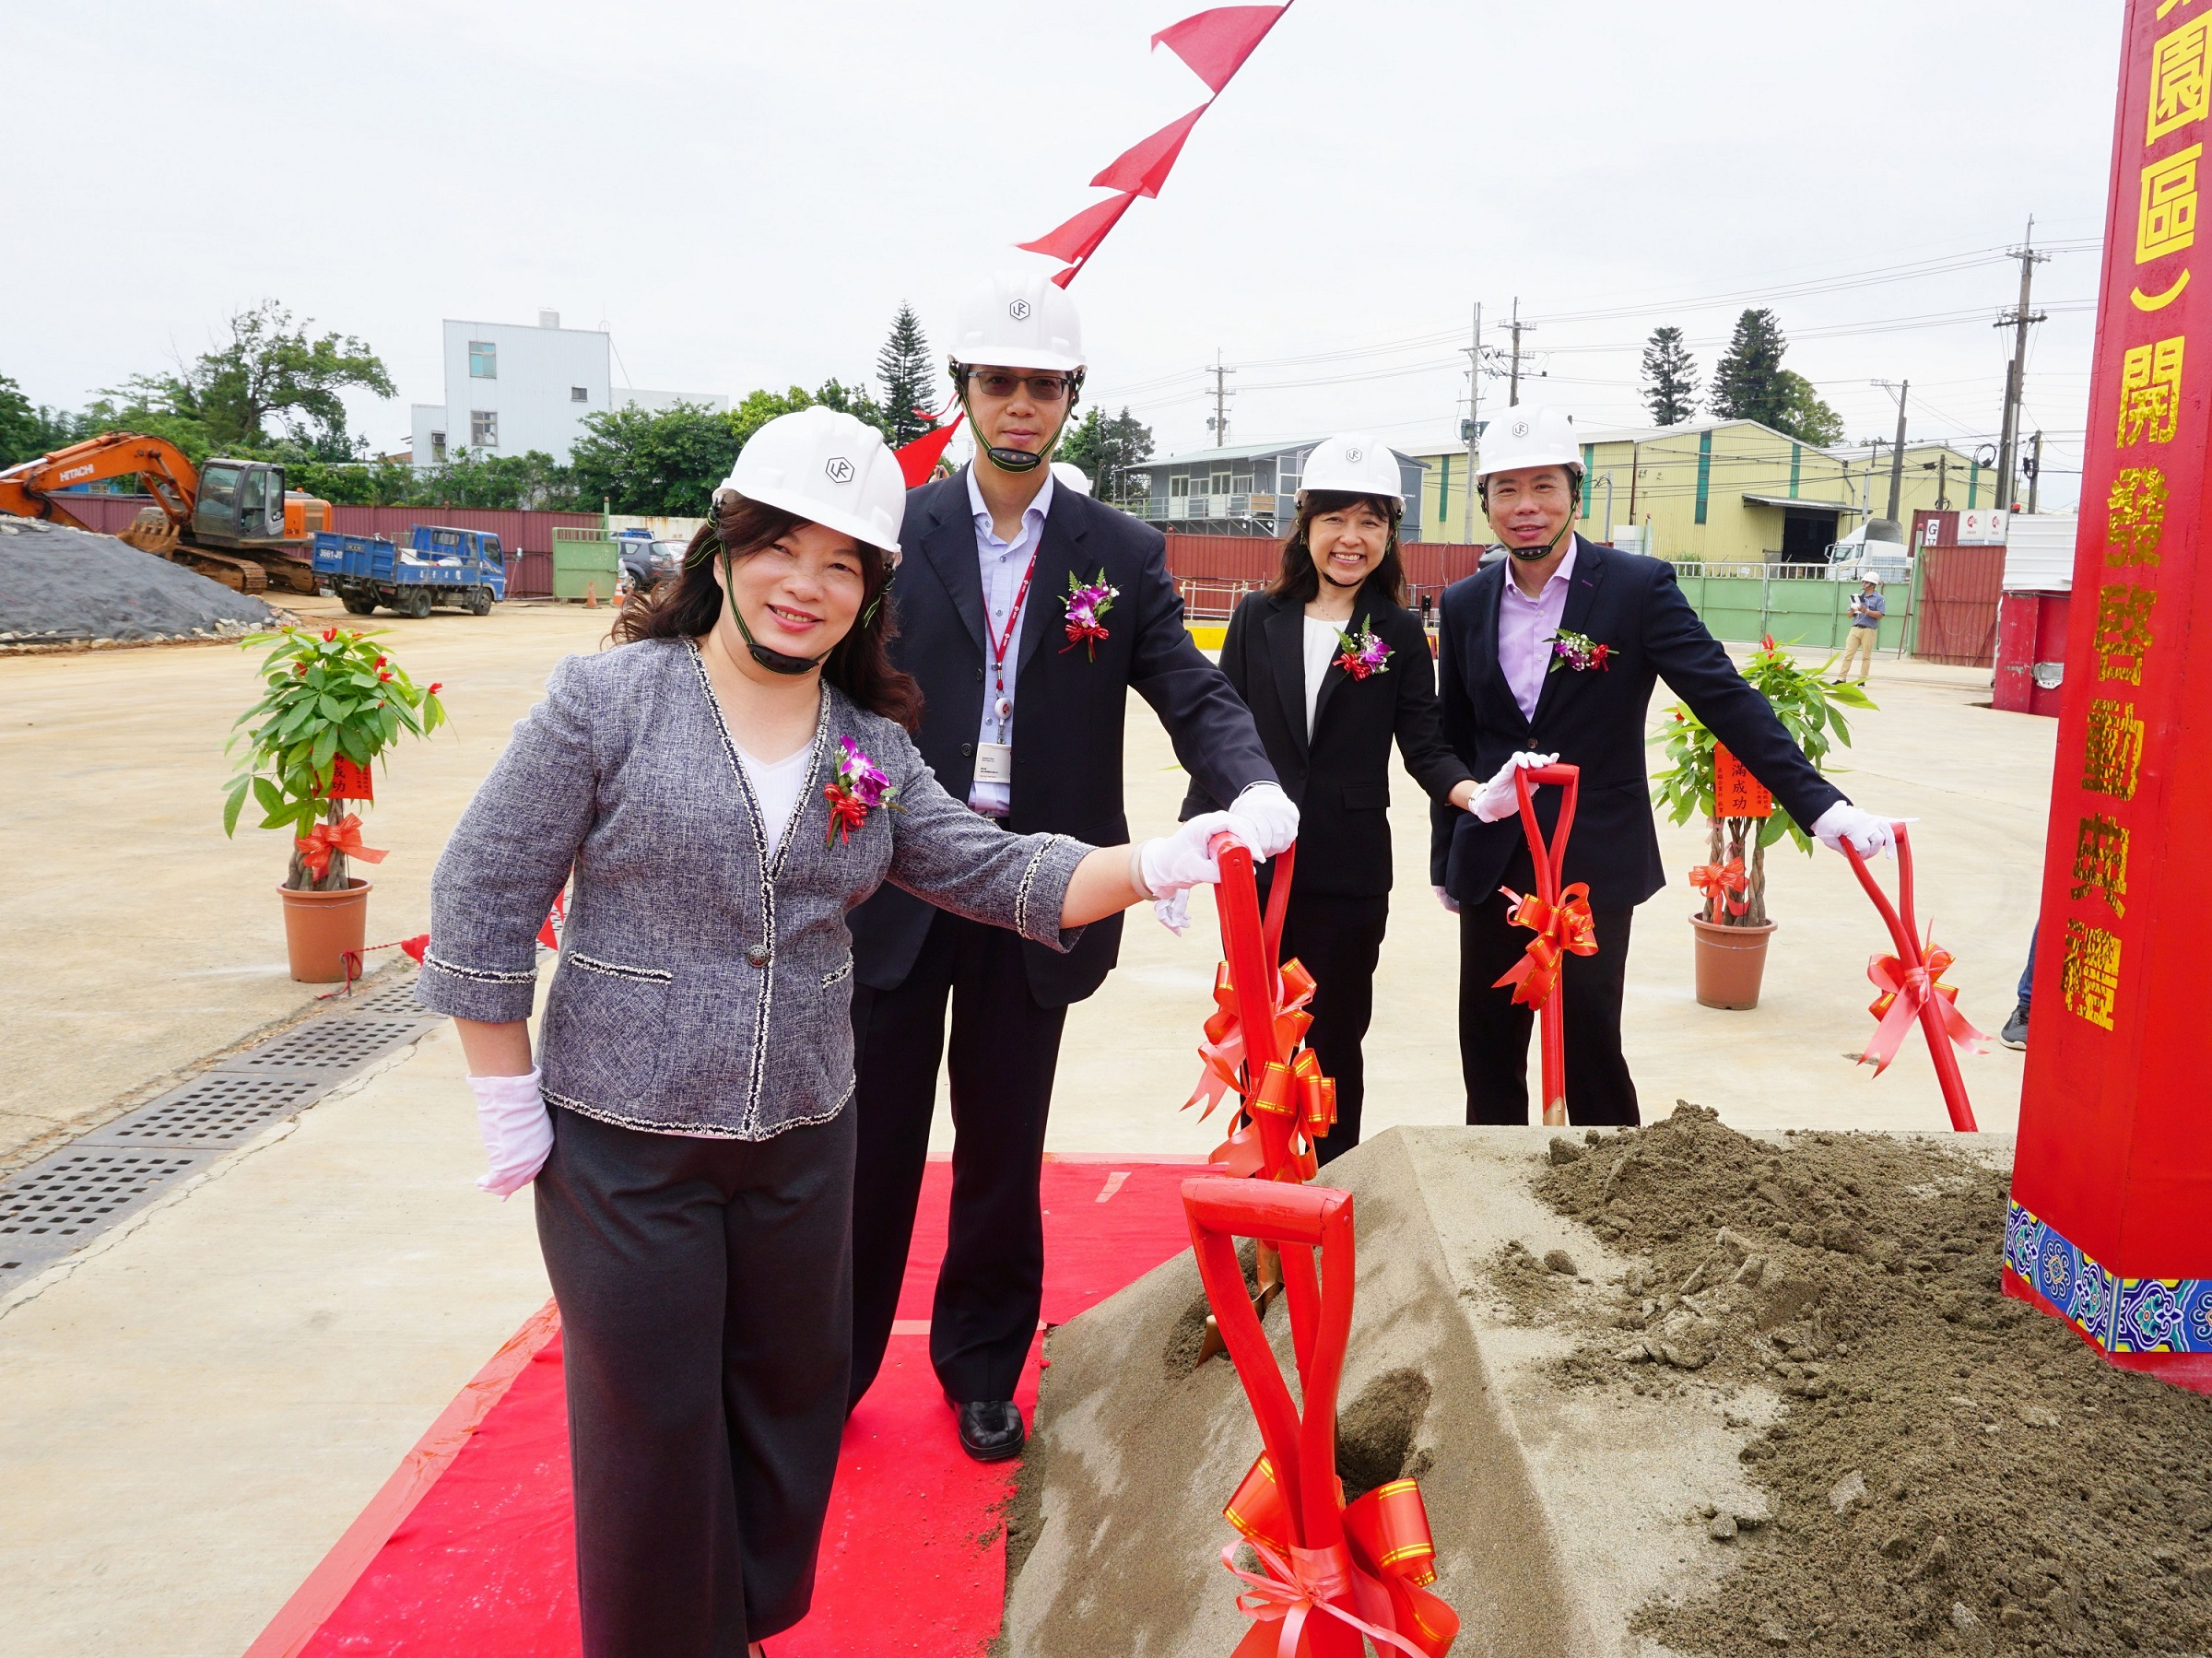 DKSH invests in next-generation healthcare distribution center in Taiwan